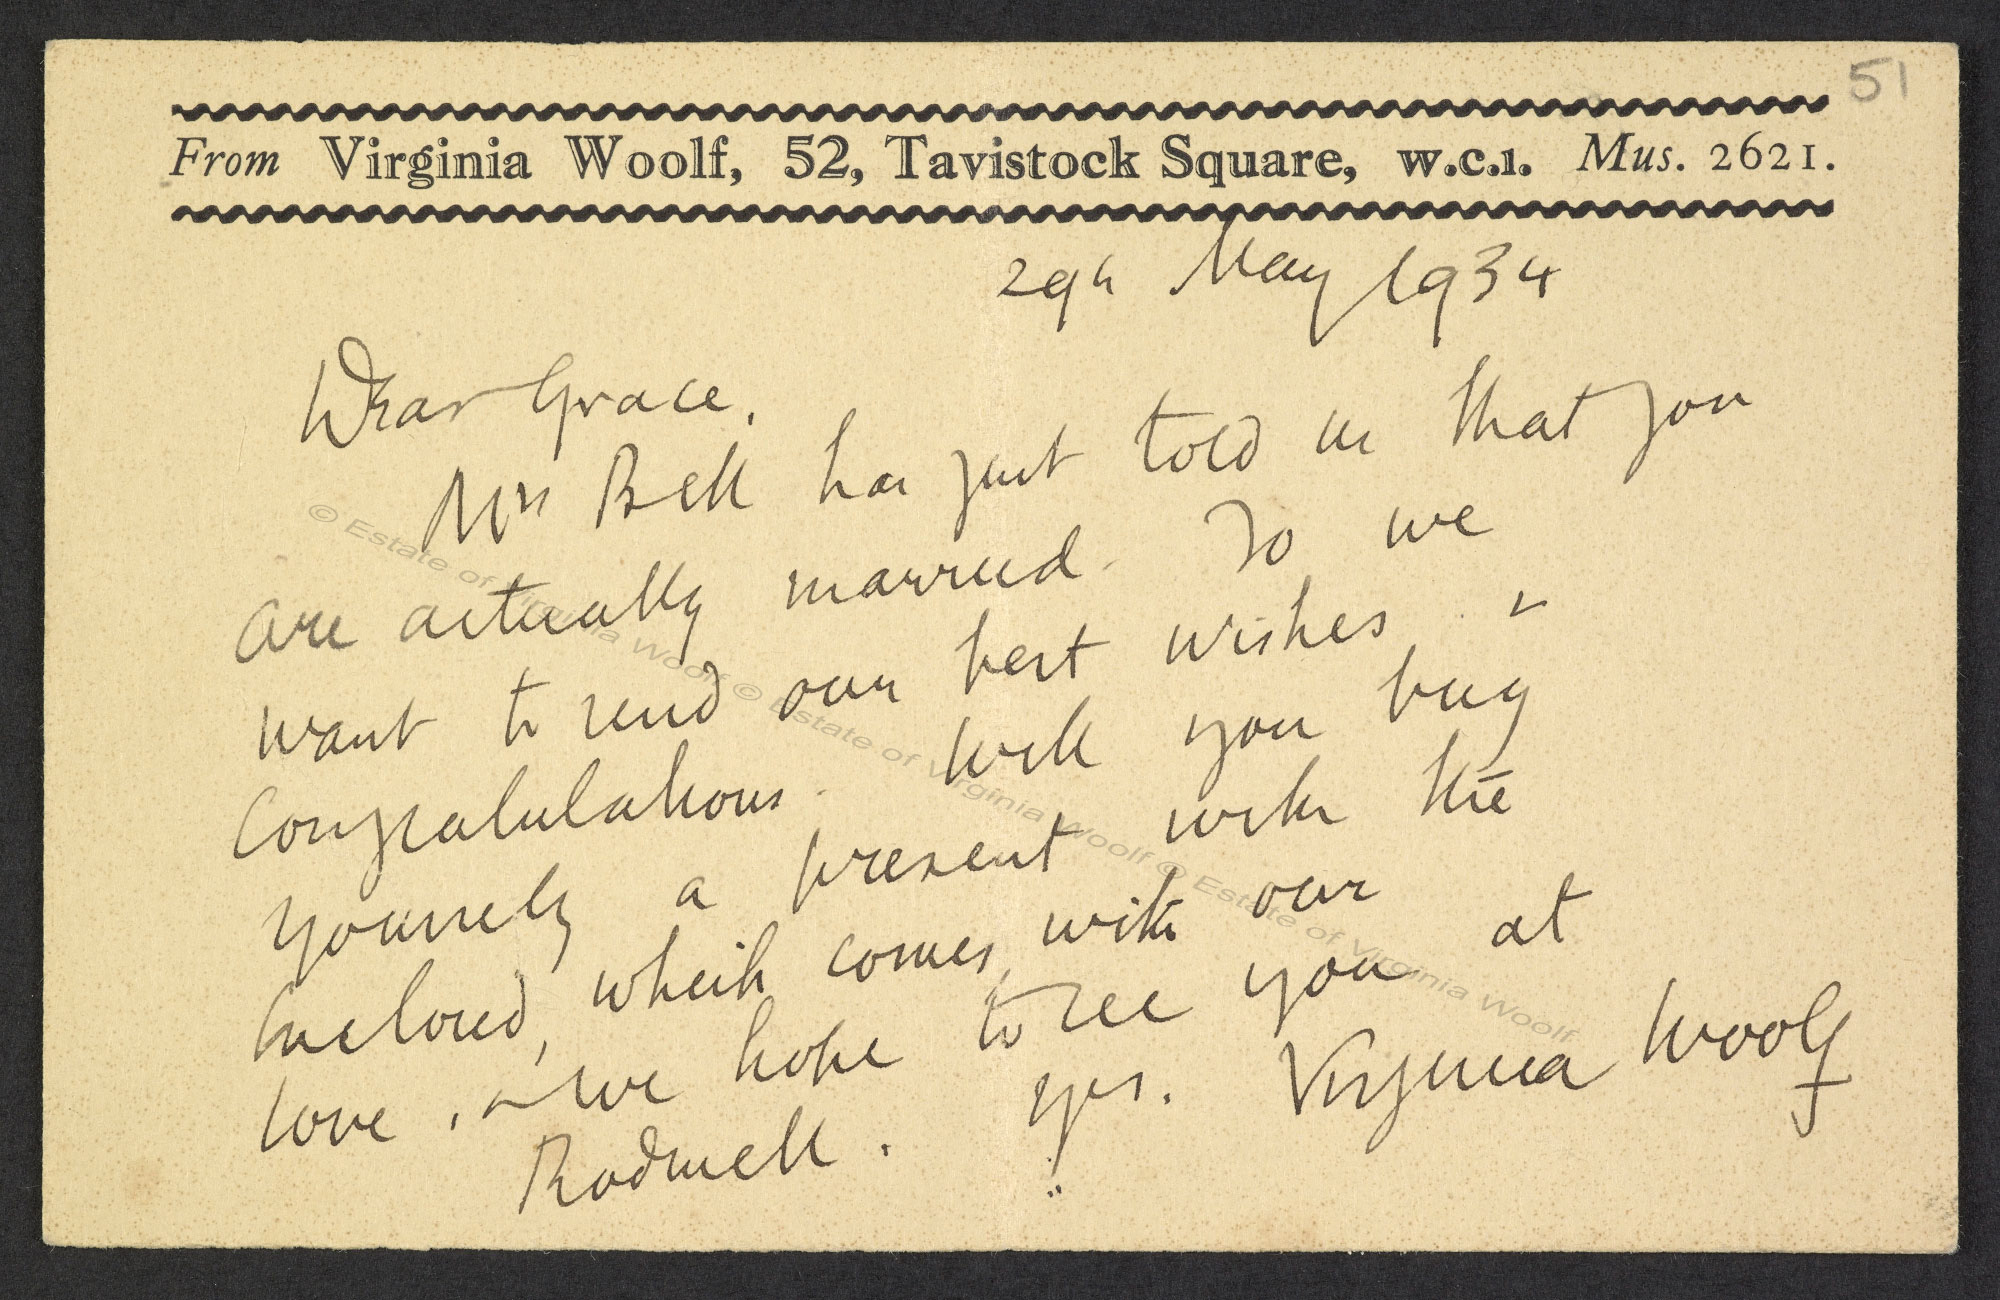 Postcards from Virginia Woolf to Grace Higgens, 1930s